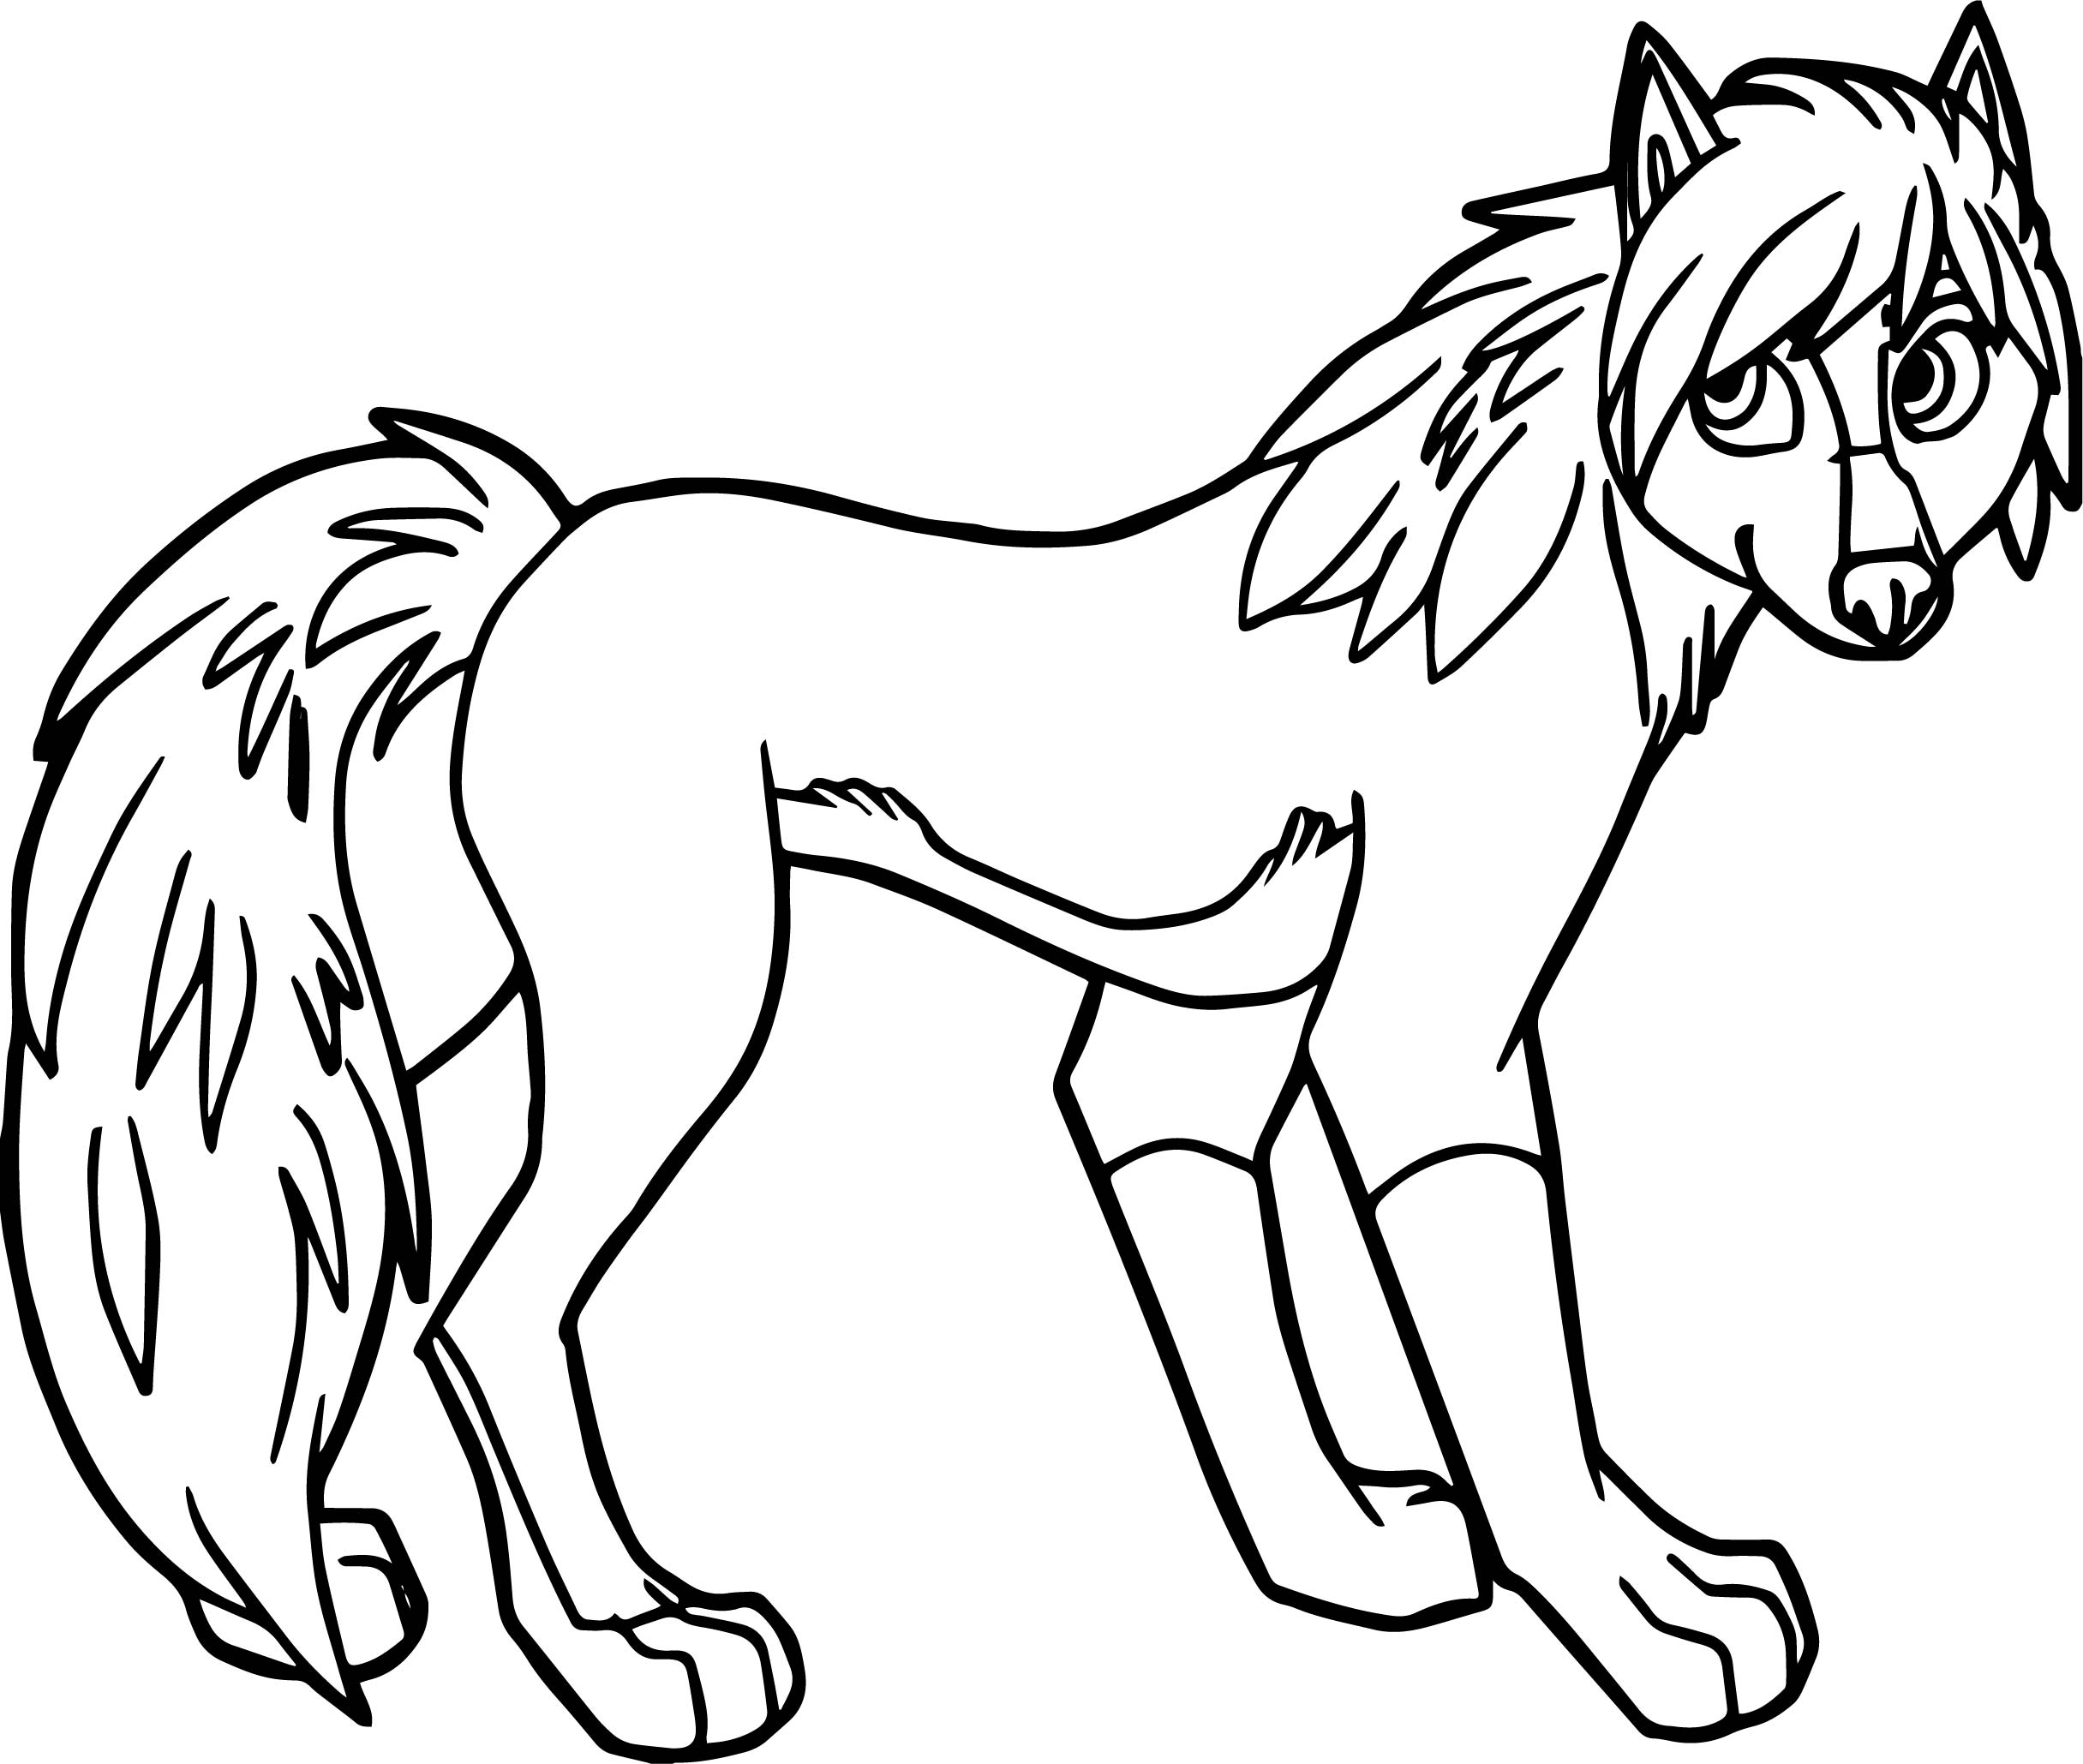 Alpha and omega wolf girl coloring page for Coloring page of a wolf